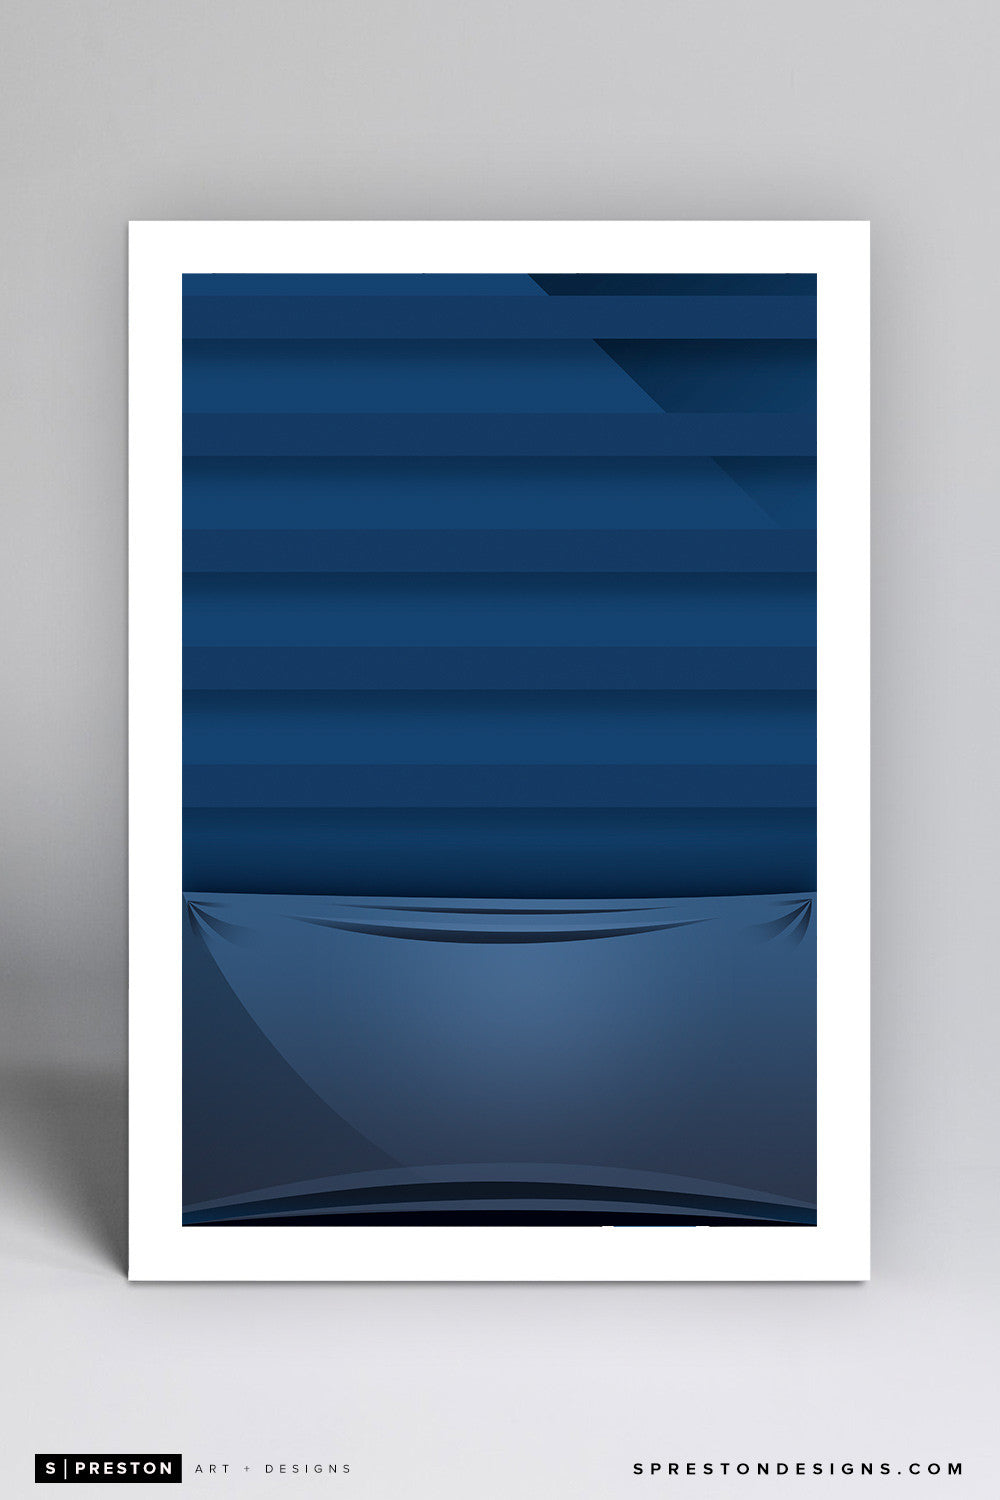 Minimalist Metrodome (Baggie) Art Print - Minnesota Twins - S. Preston Art + Designs